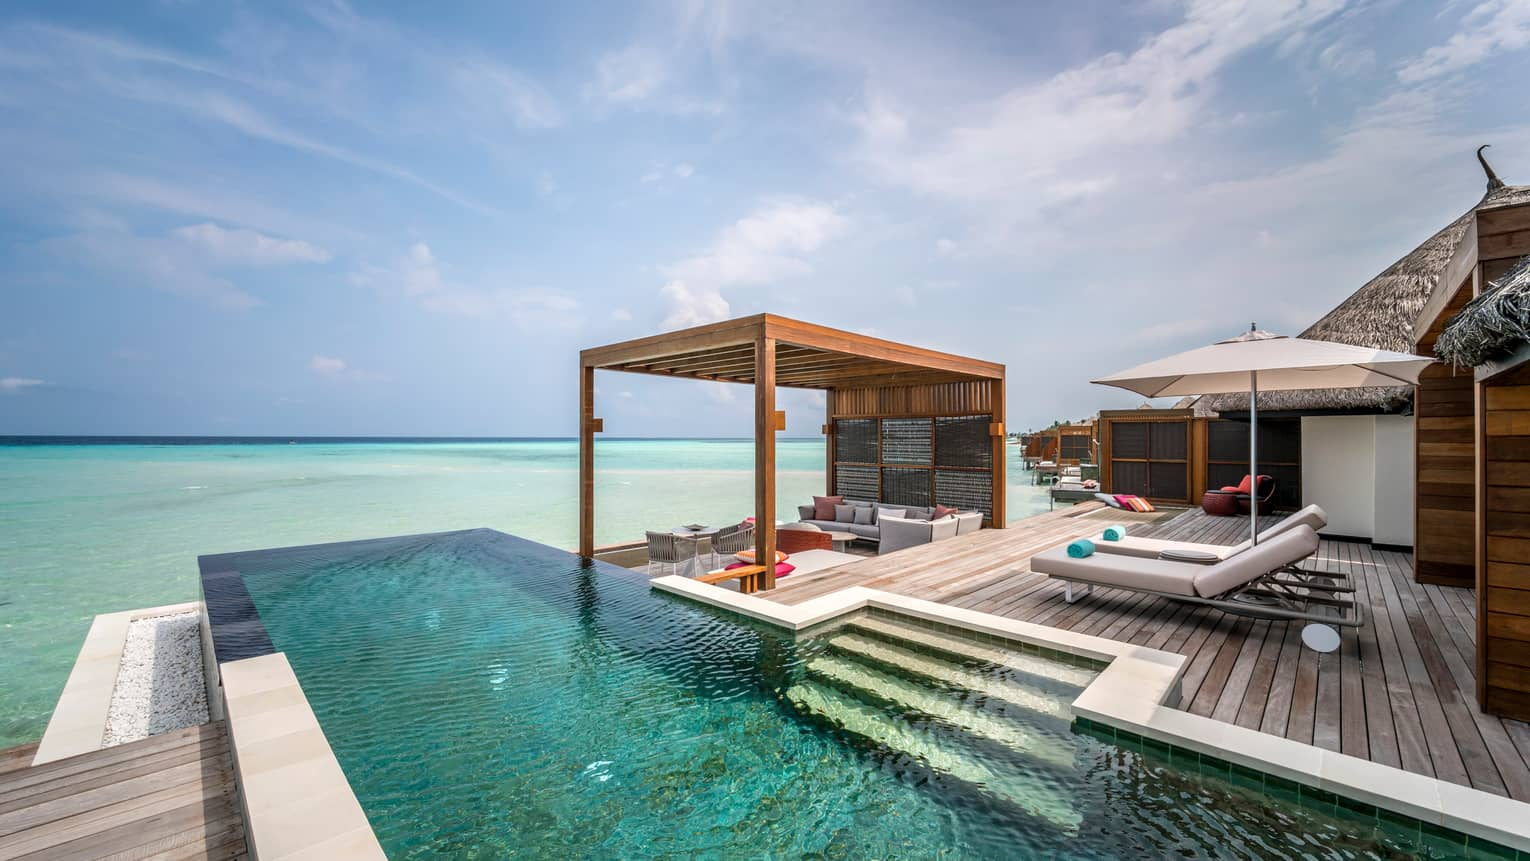 The two-bedroom water suite's extended deck with private pool and shaded lounge area